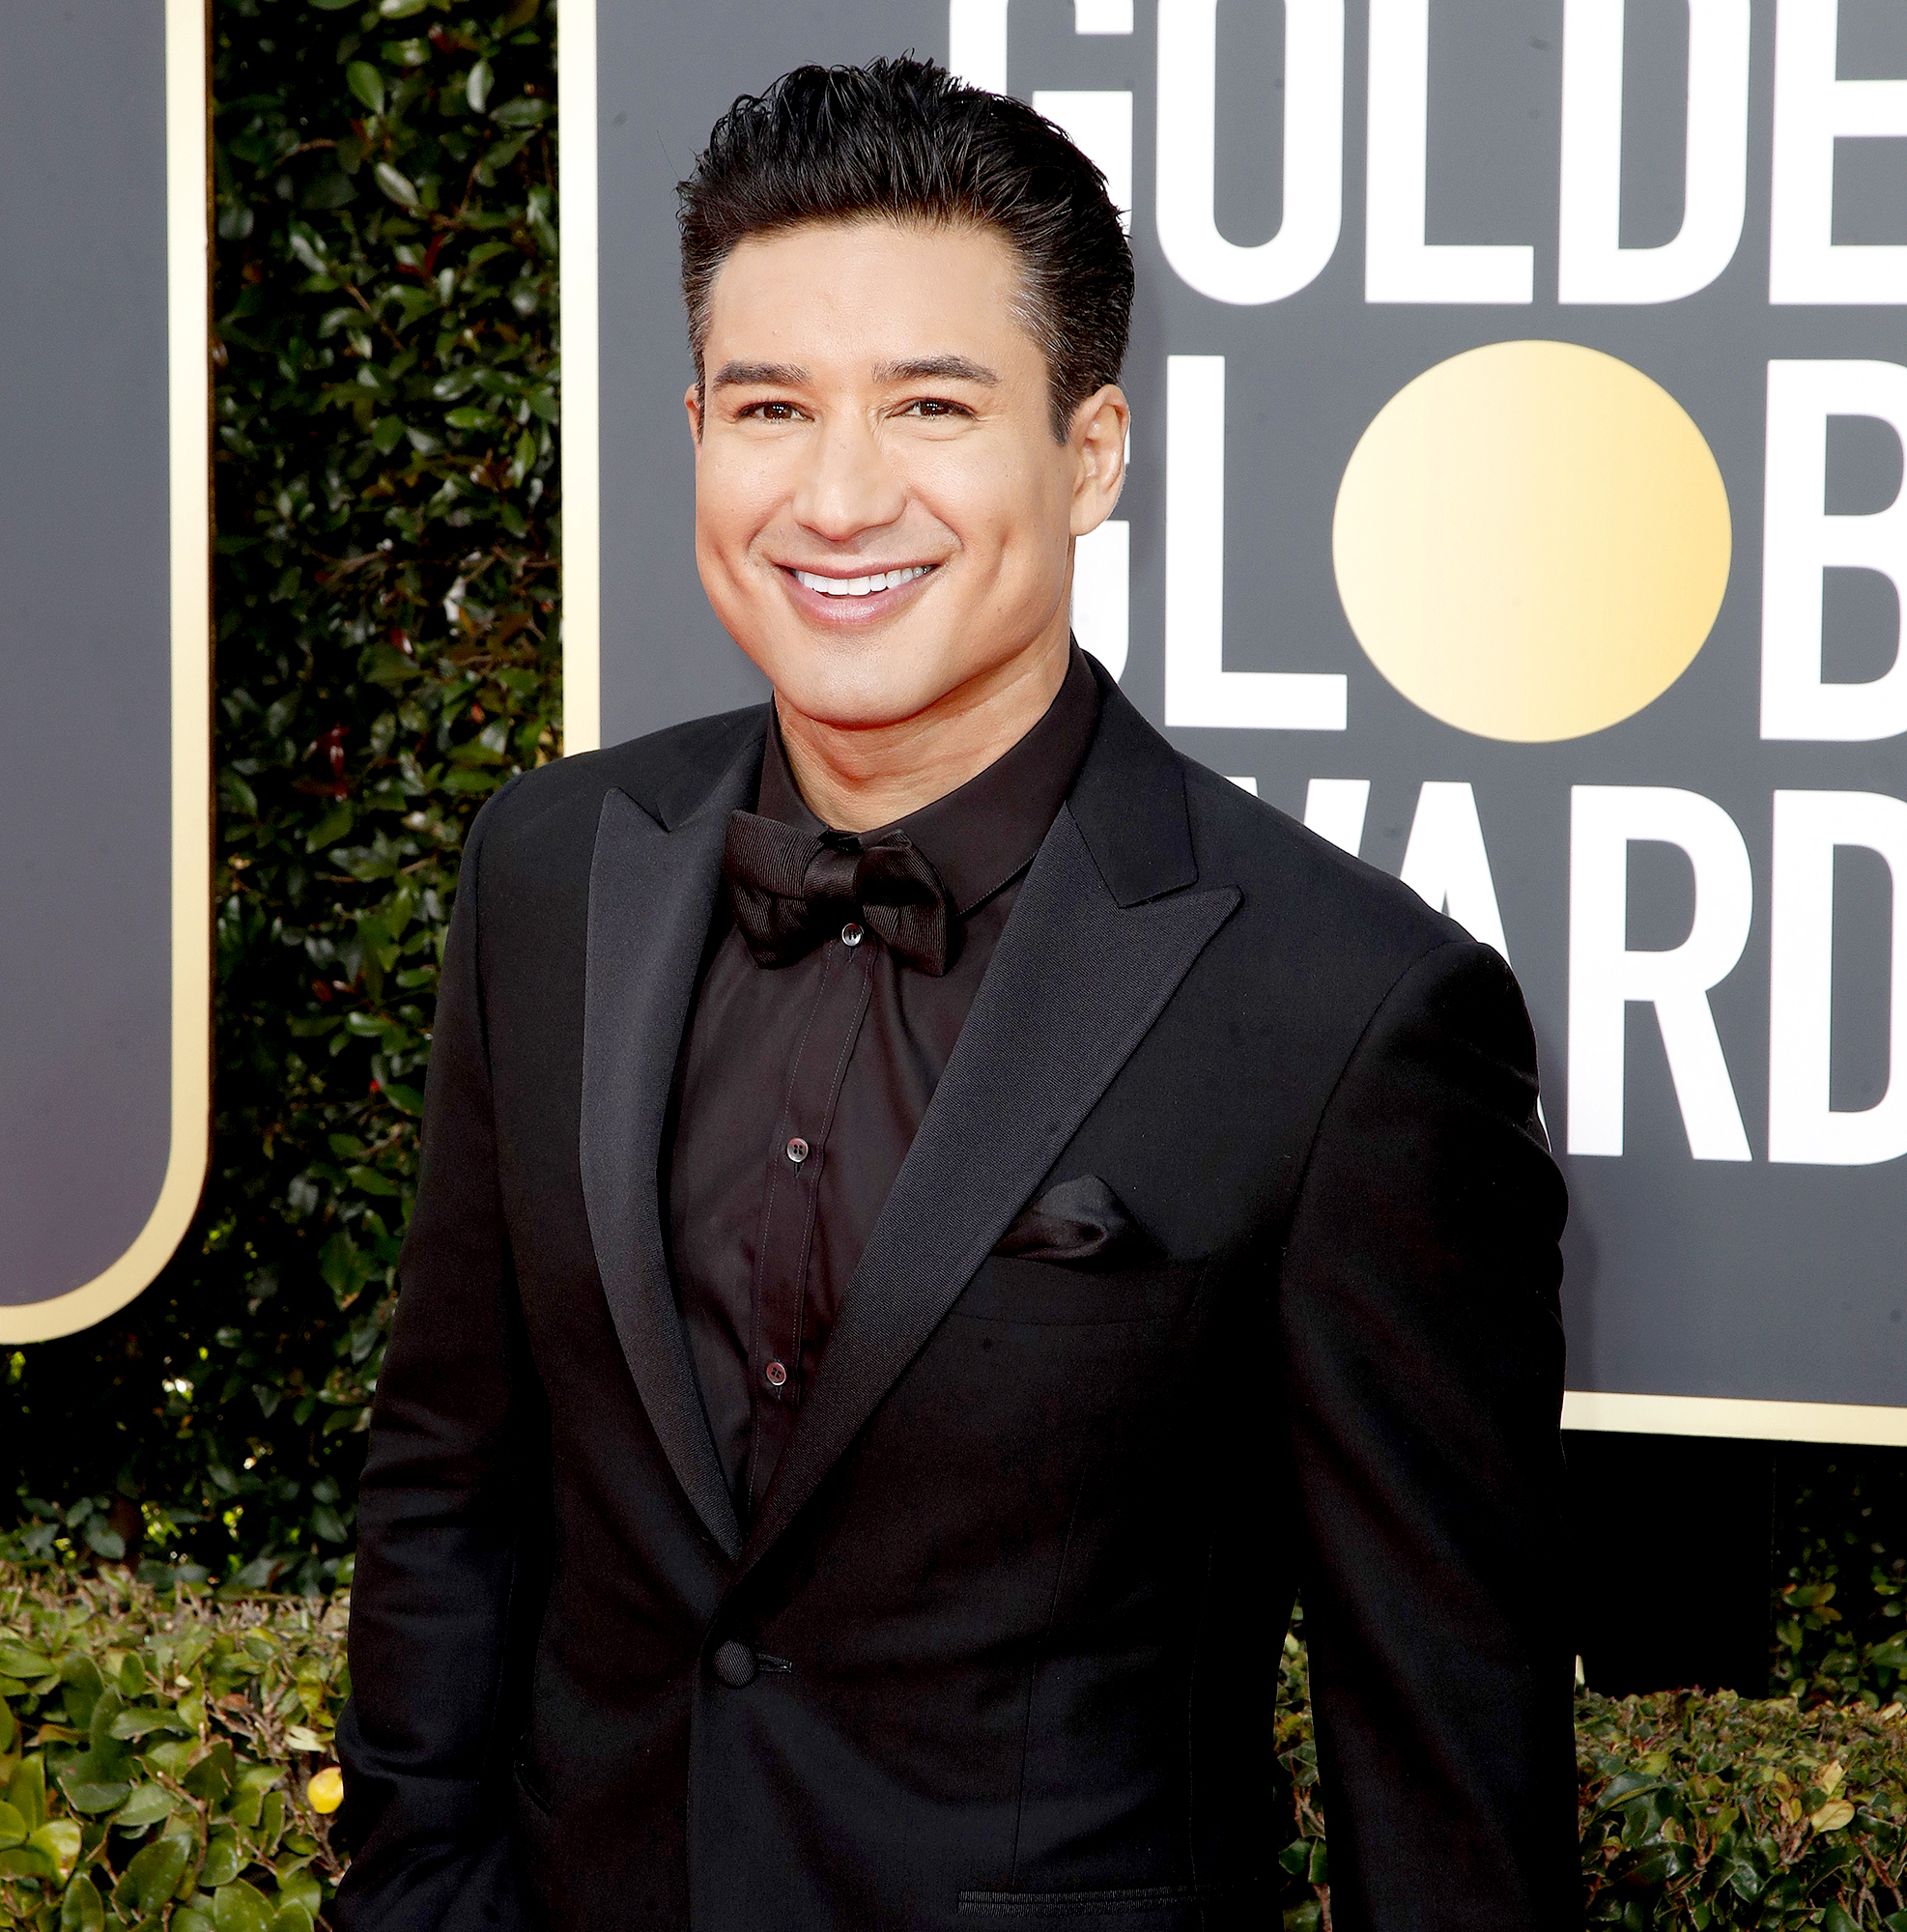 Mario-Lopez-Saved-By-The-Bell-cast-still-close